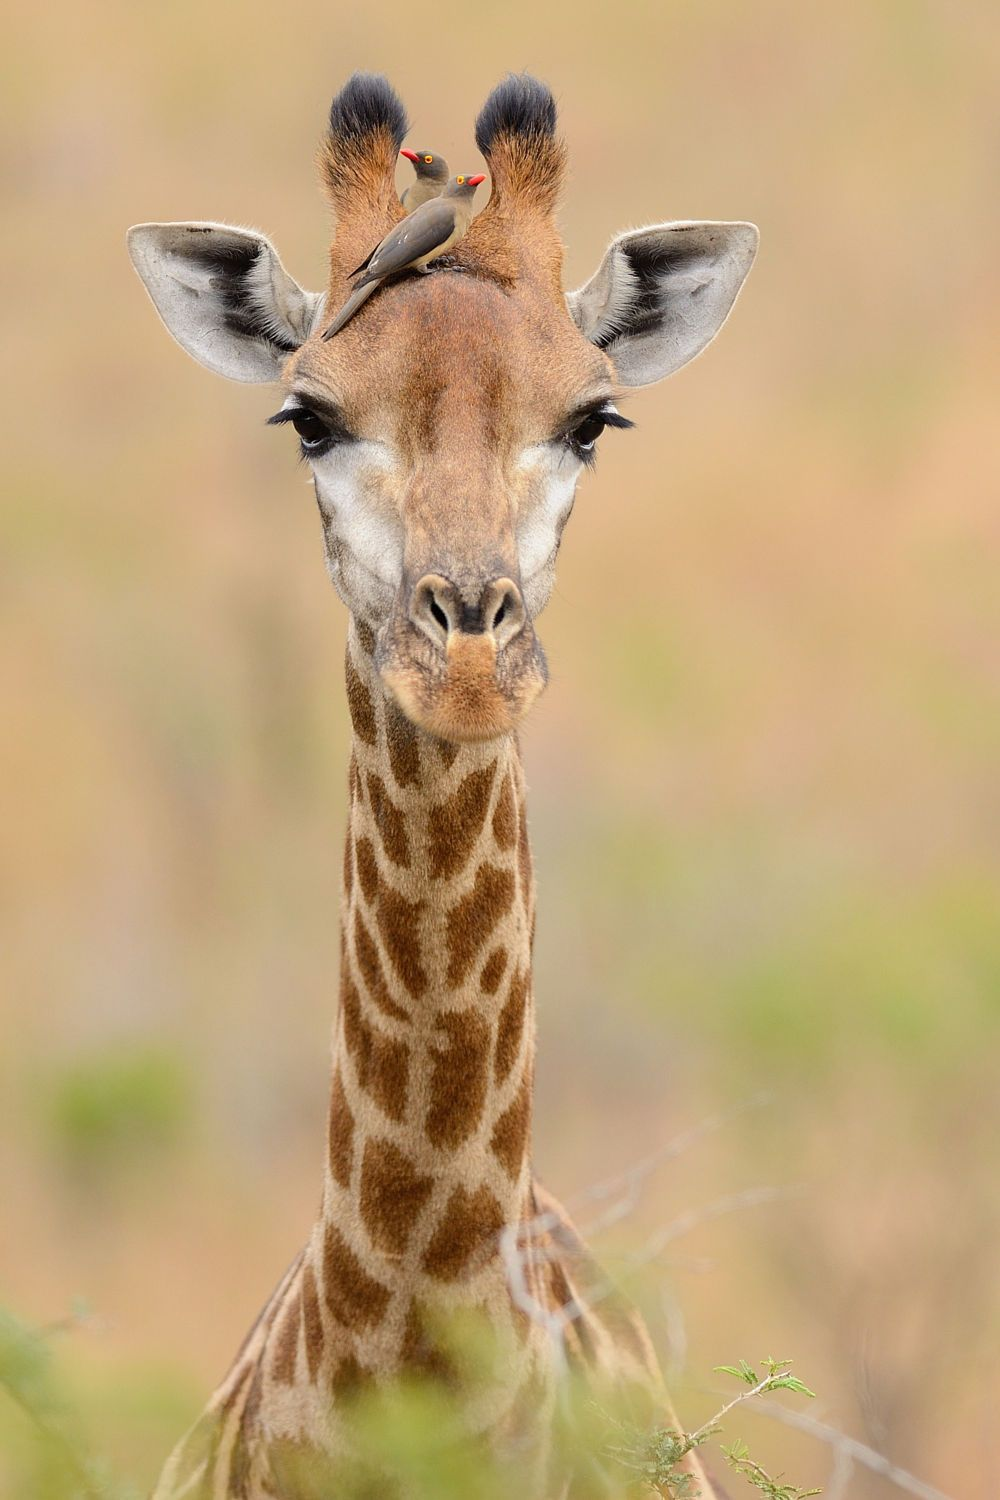 Giraffe by Elmar Weiss on 500px - Giraffe with Red-billed Oxpeckers, Hluhluwe Imfolozi Game Reserve, Kwa Zulu Natal, South Africa